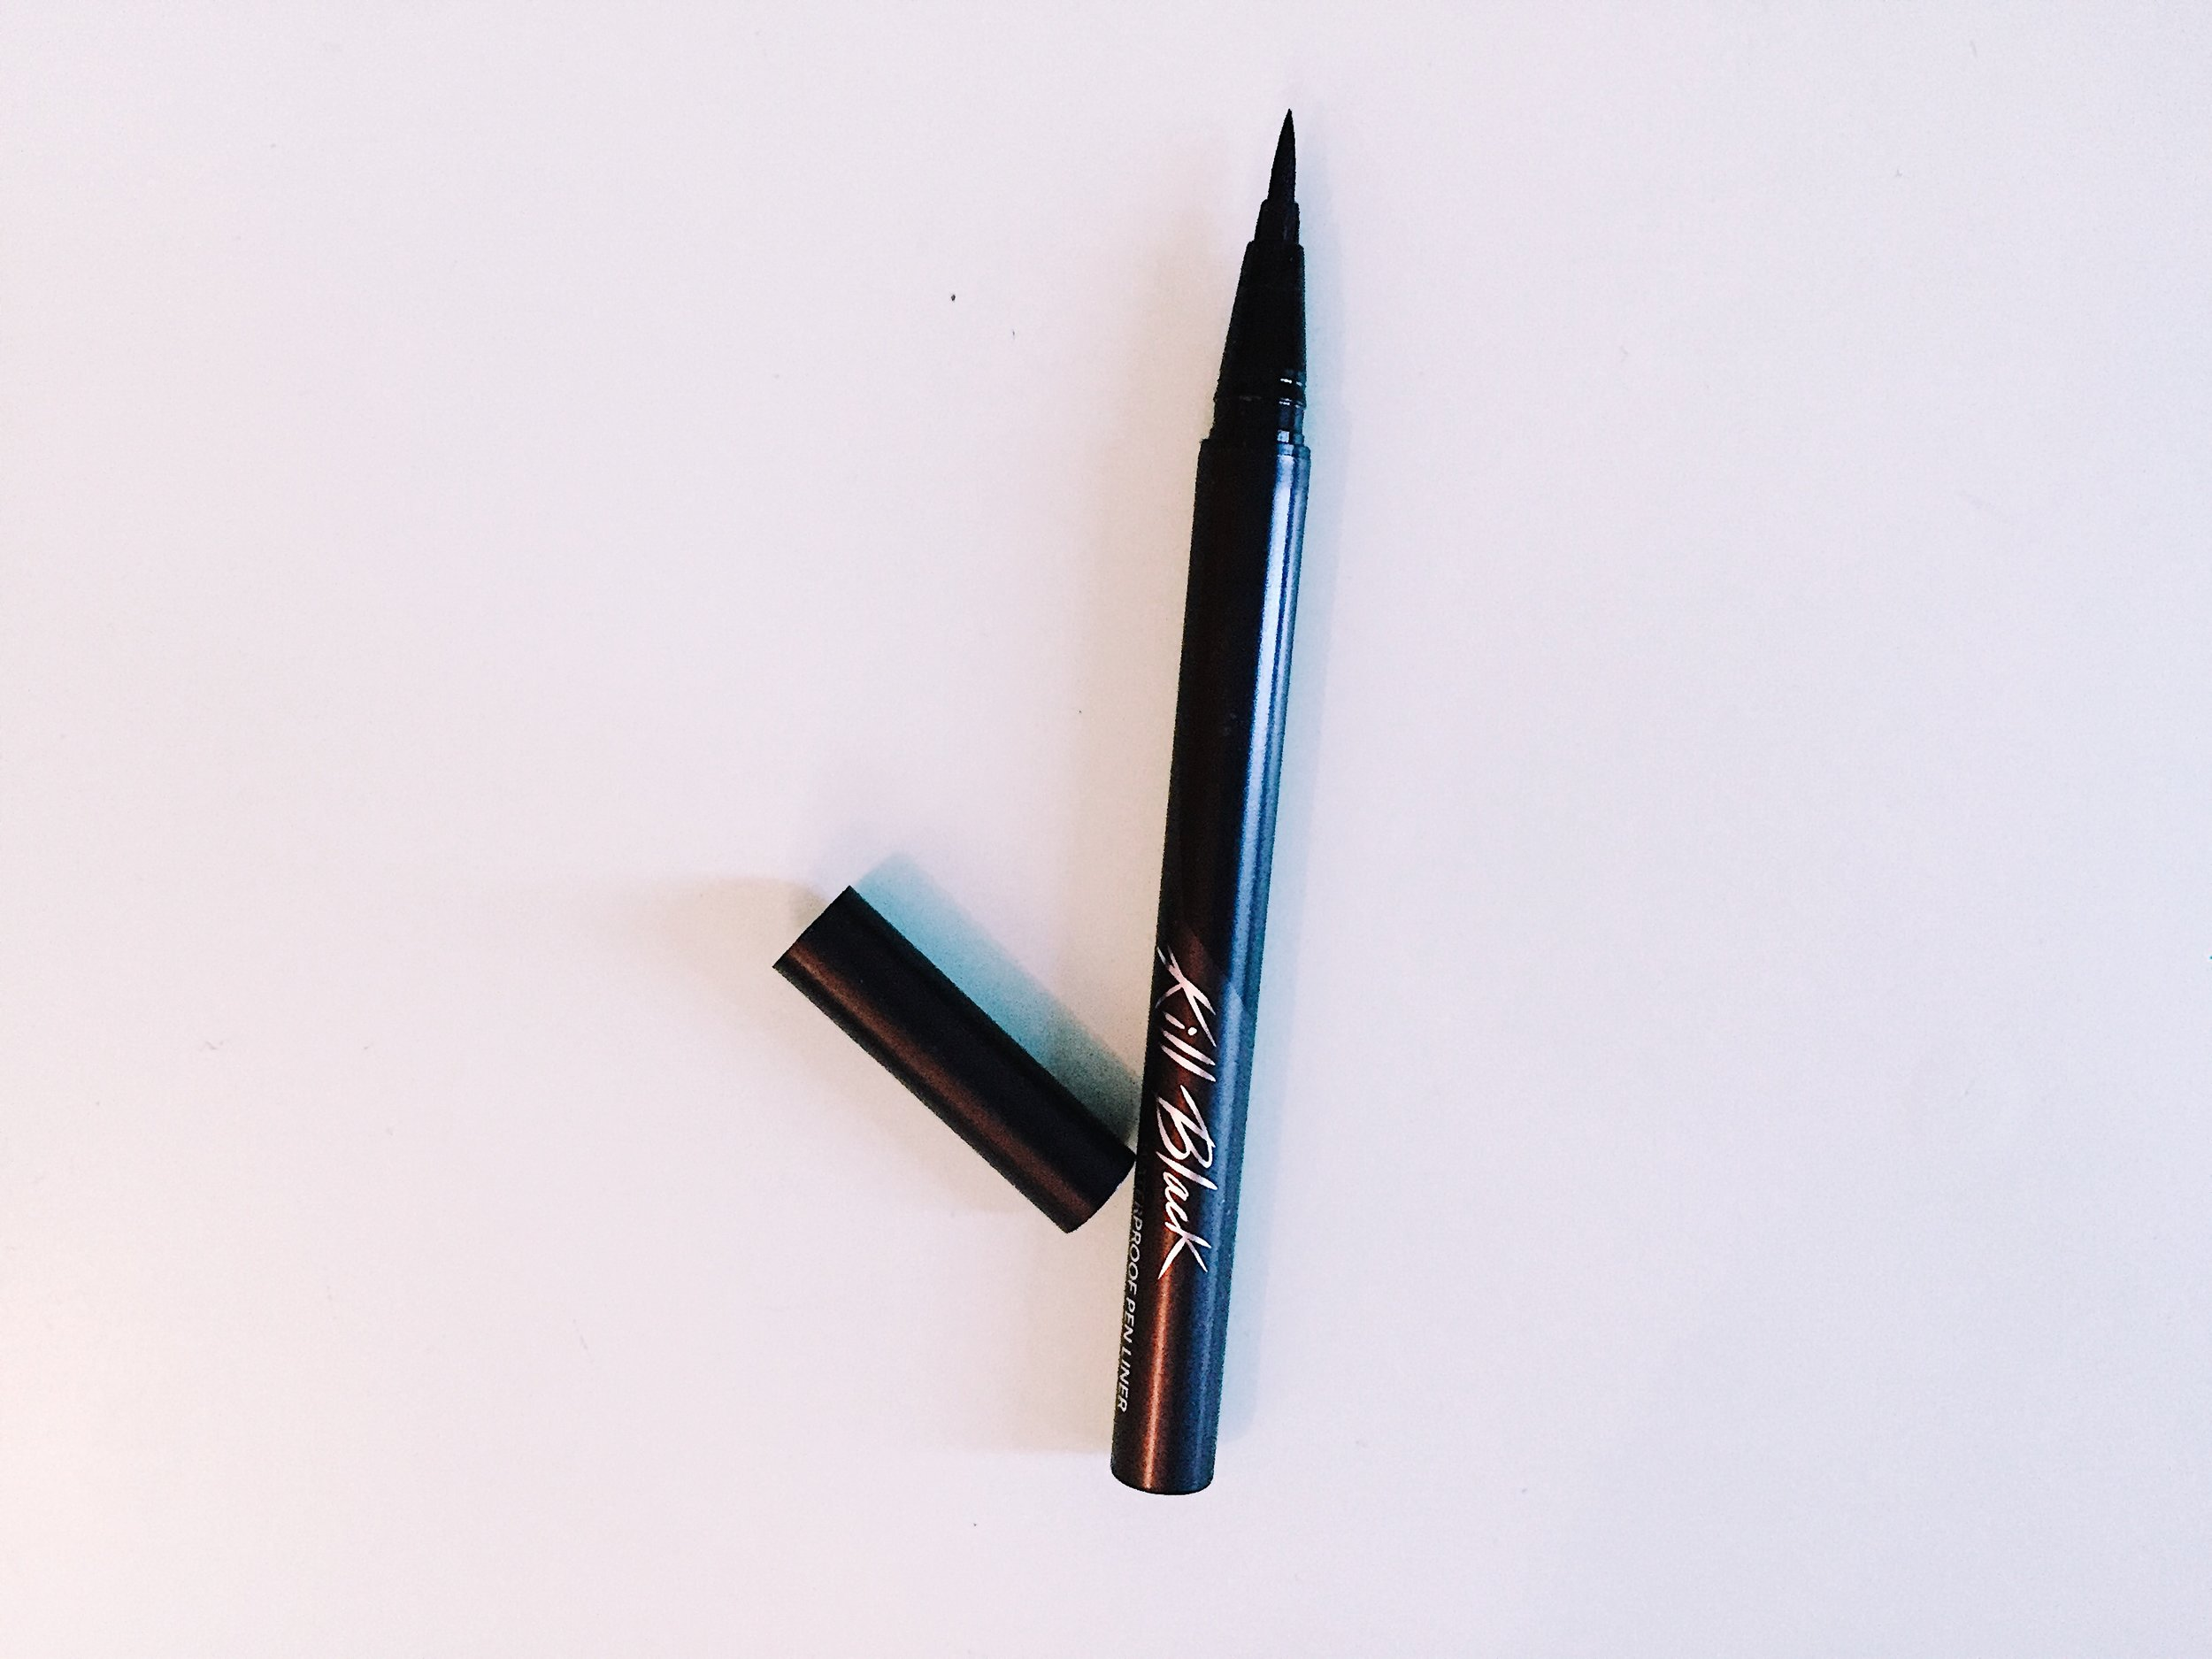 Clio - A super affordable felt tip pen liner from Korean brand Clio. Pros: Under $10. Very dark. Thin tip of pen allows for high precision. Cons: Consistency can be runny when first applied to skin. Difficult to get in store in the US.